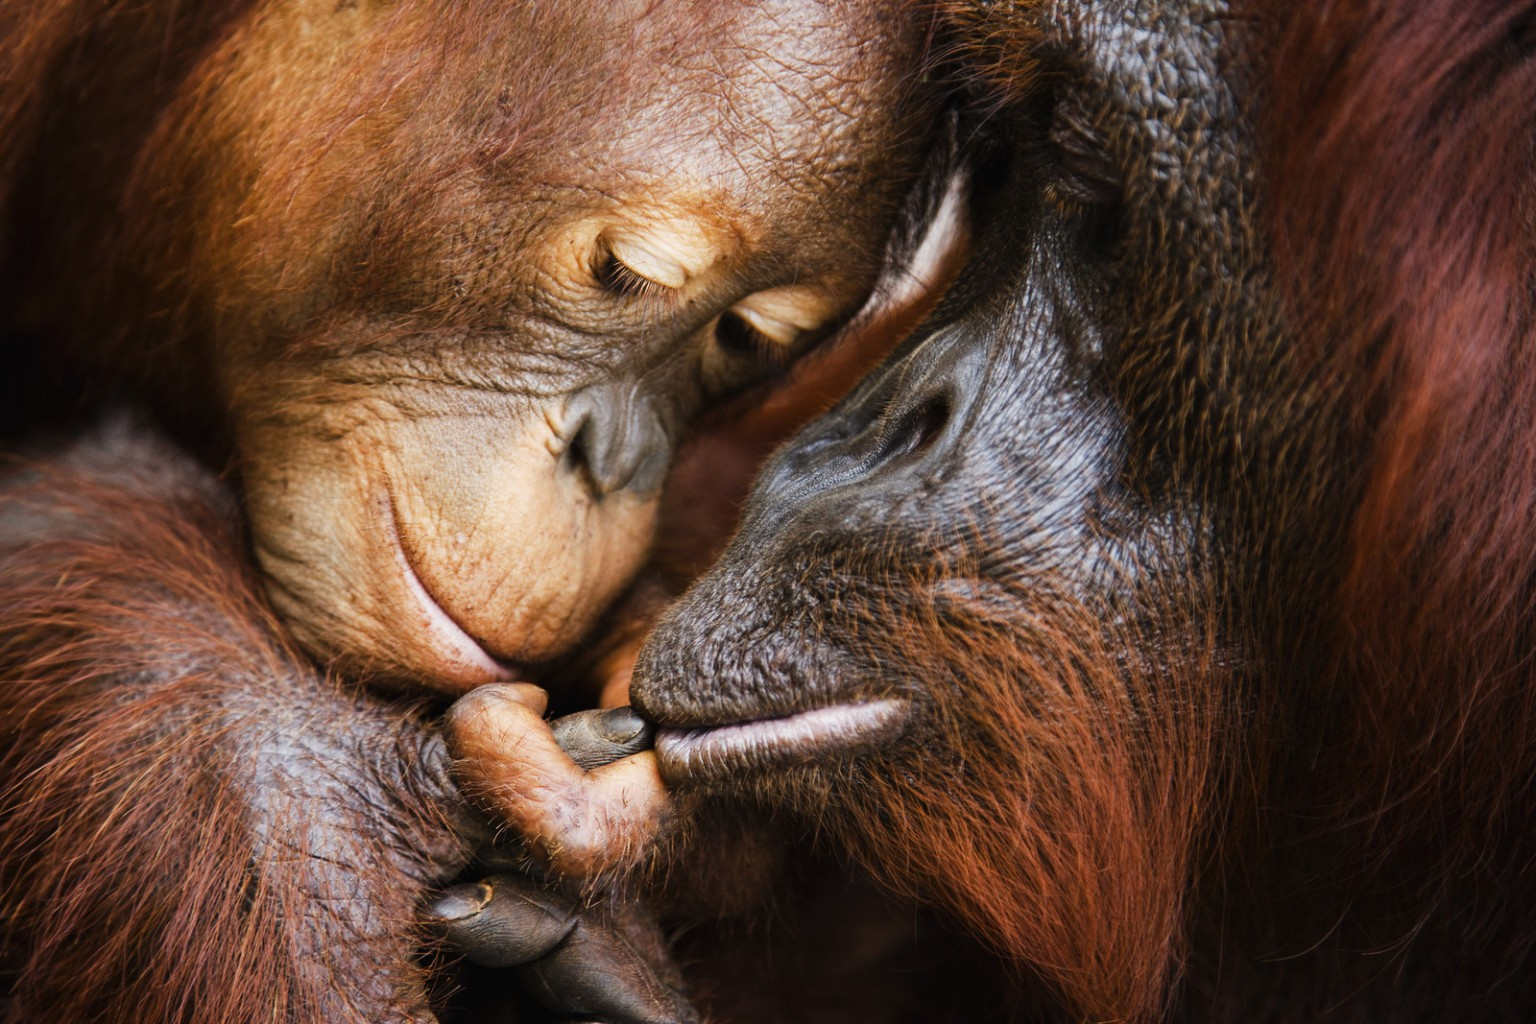 Image: A touching moment as an infant orangutan touches his mother's lip with his small finger ( Pongo pygmaeus ) and she wraps her big finger around his, Borneo, Indonesia